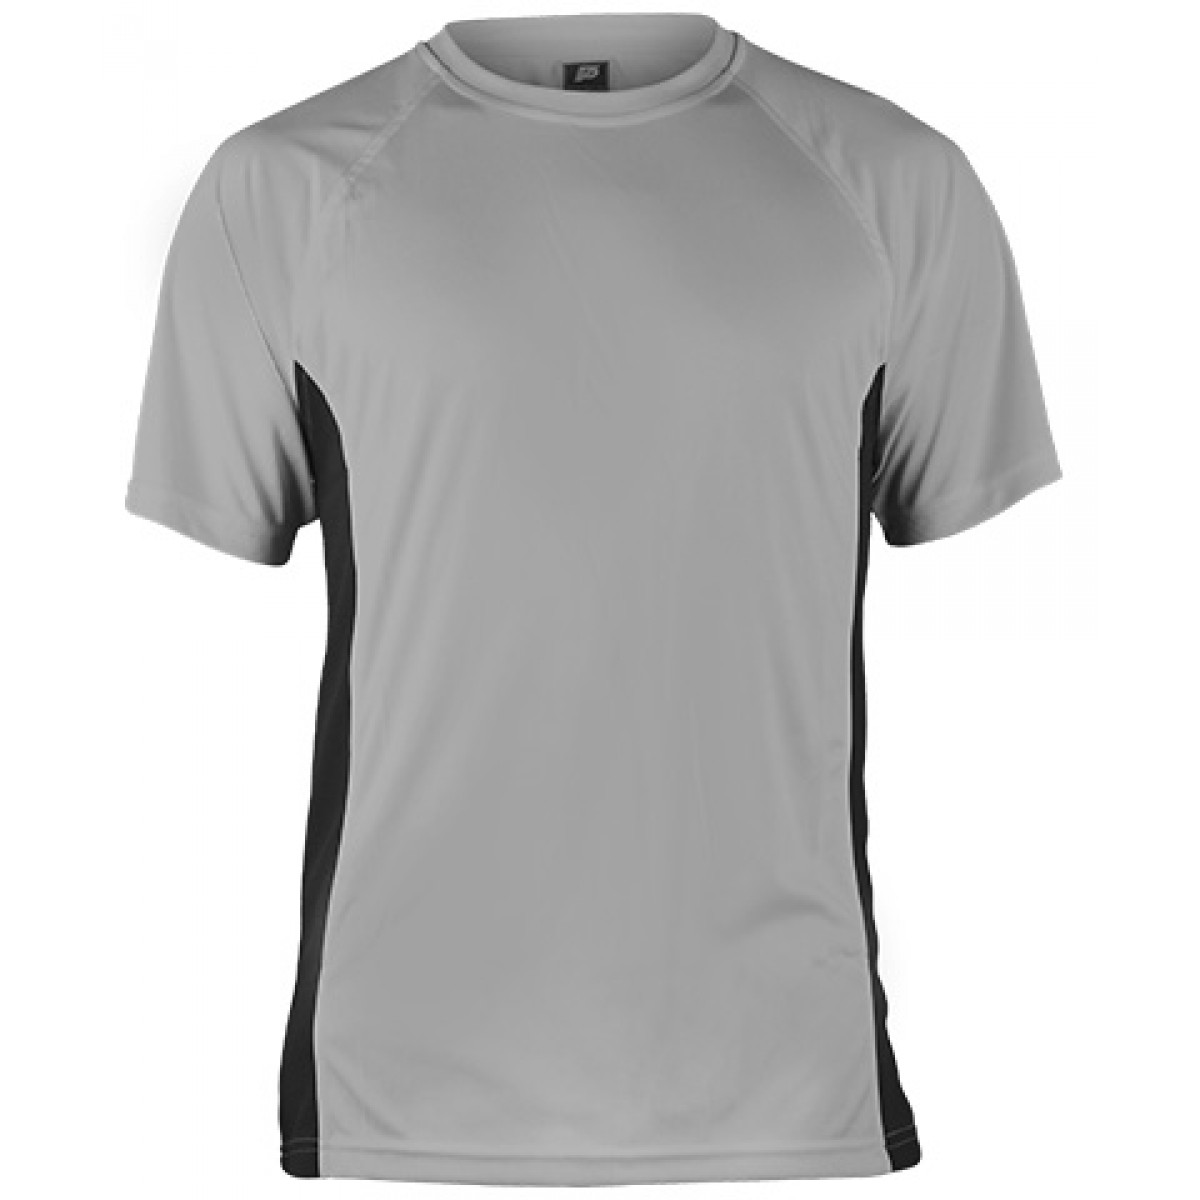 Short Sleeves Performance With Side Insert-Gray/Black-L